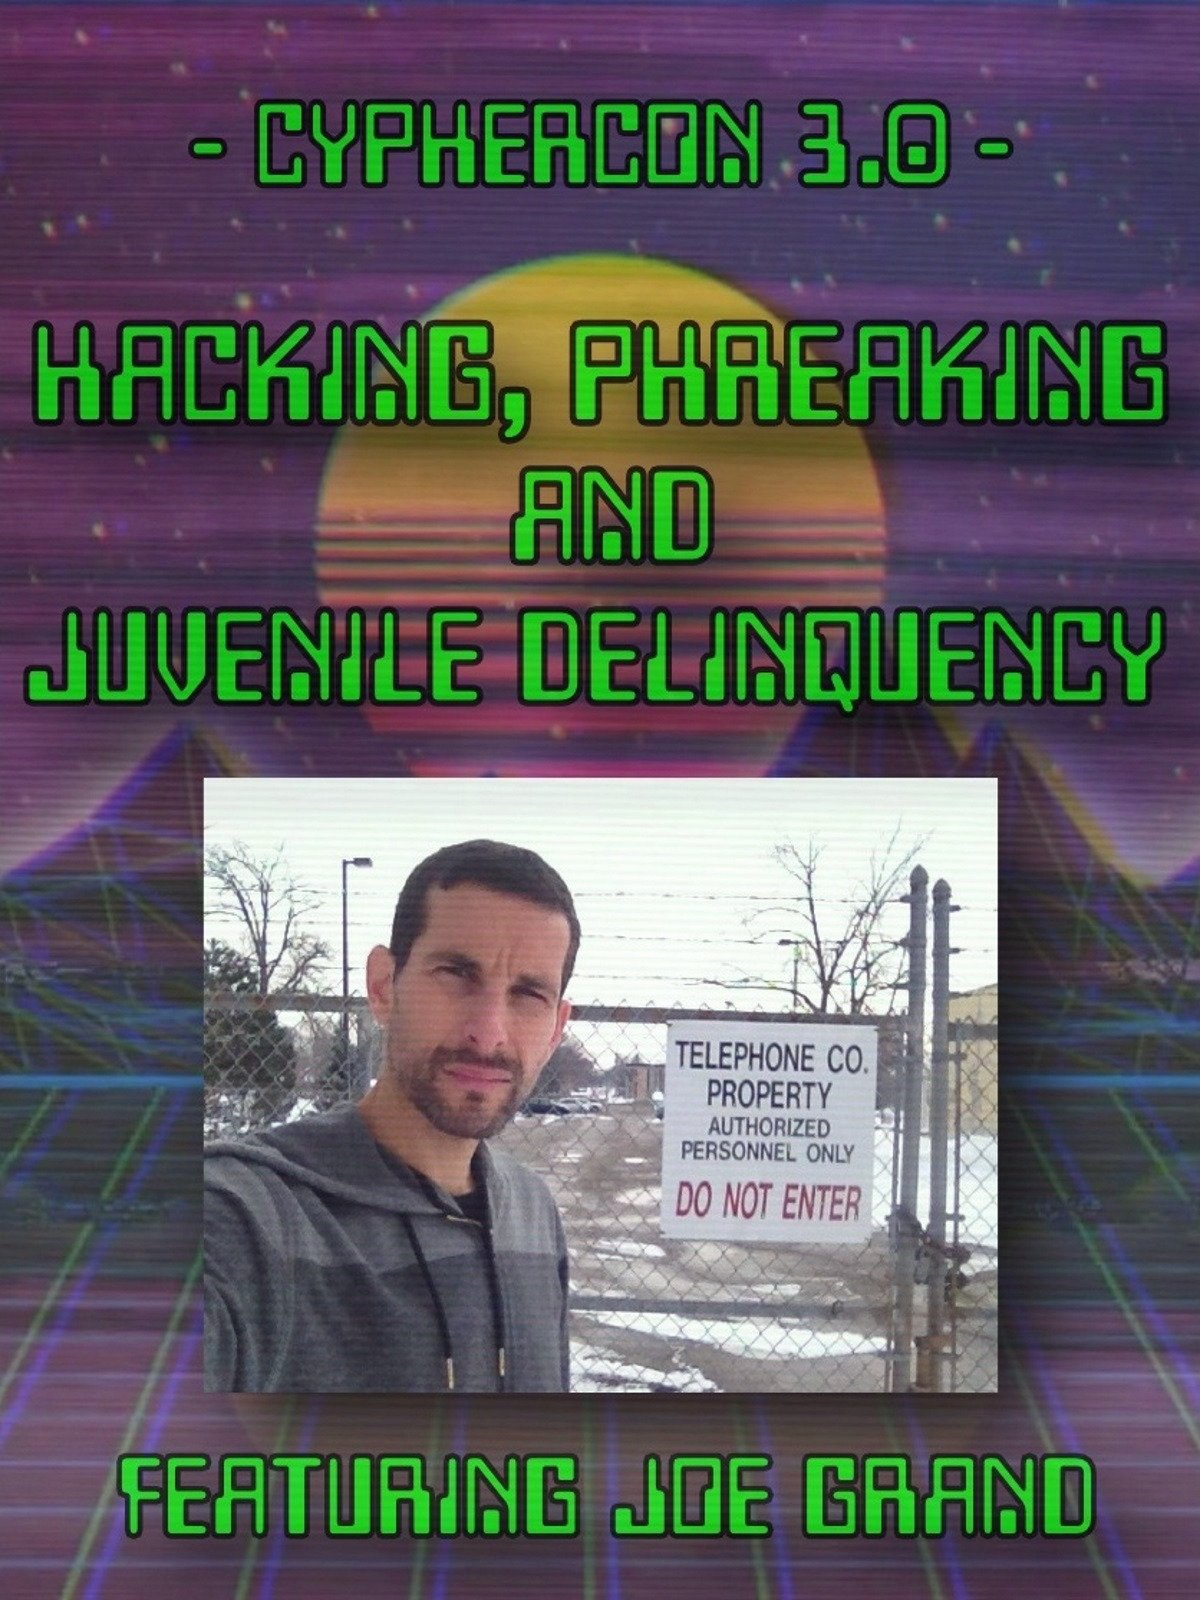 Hacking, Phreaking & Juvenile Delinquency